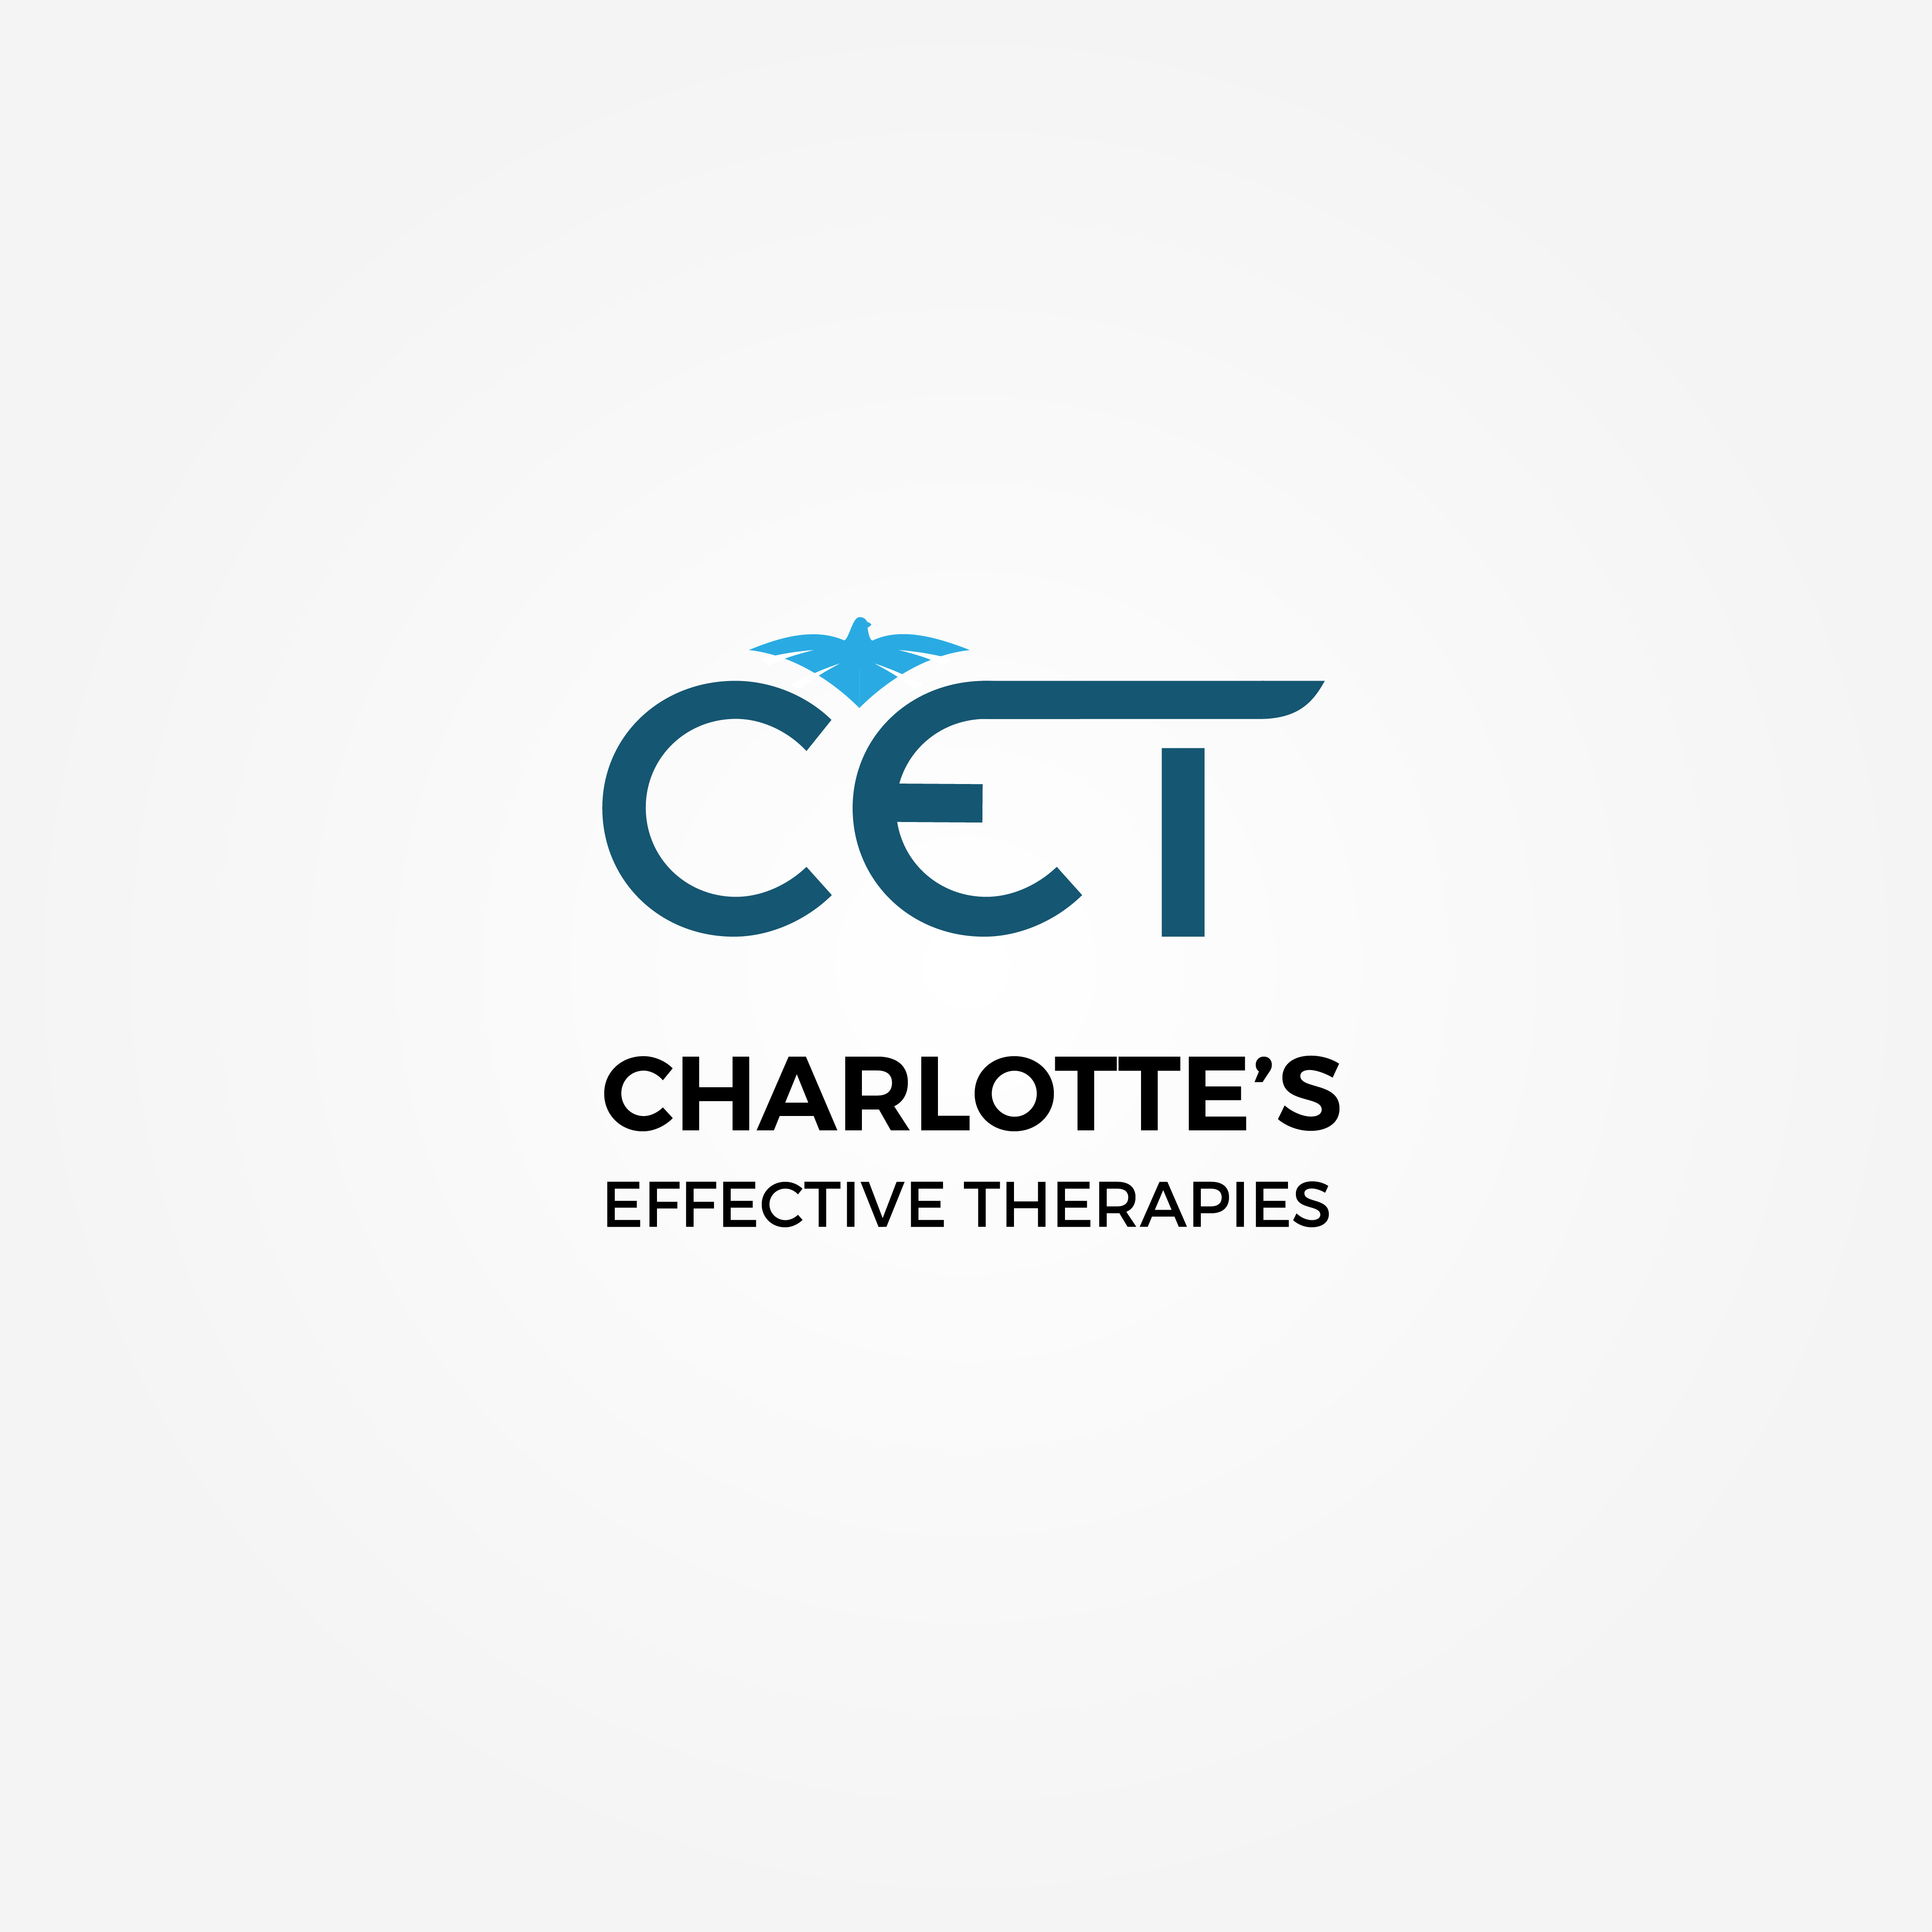 SERVICES OF CHARLOTTE'S EFFECTIVE THERAPIES